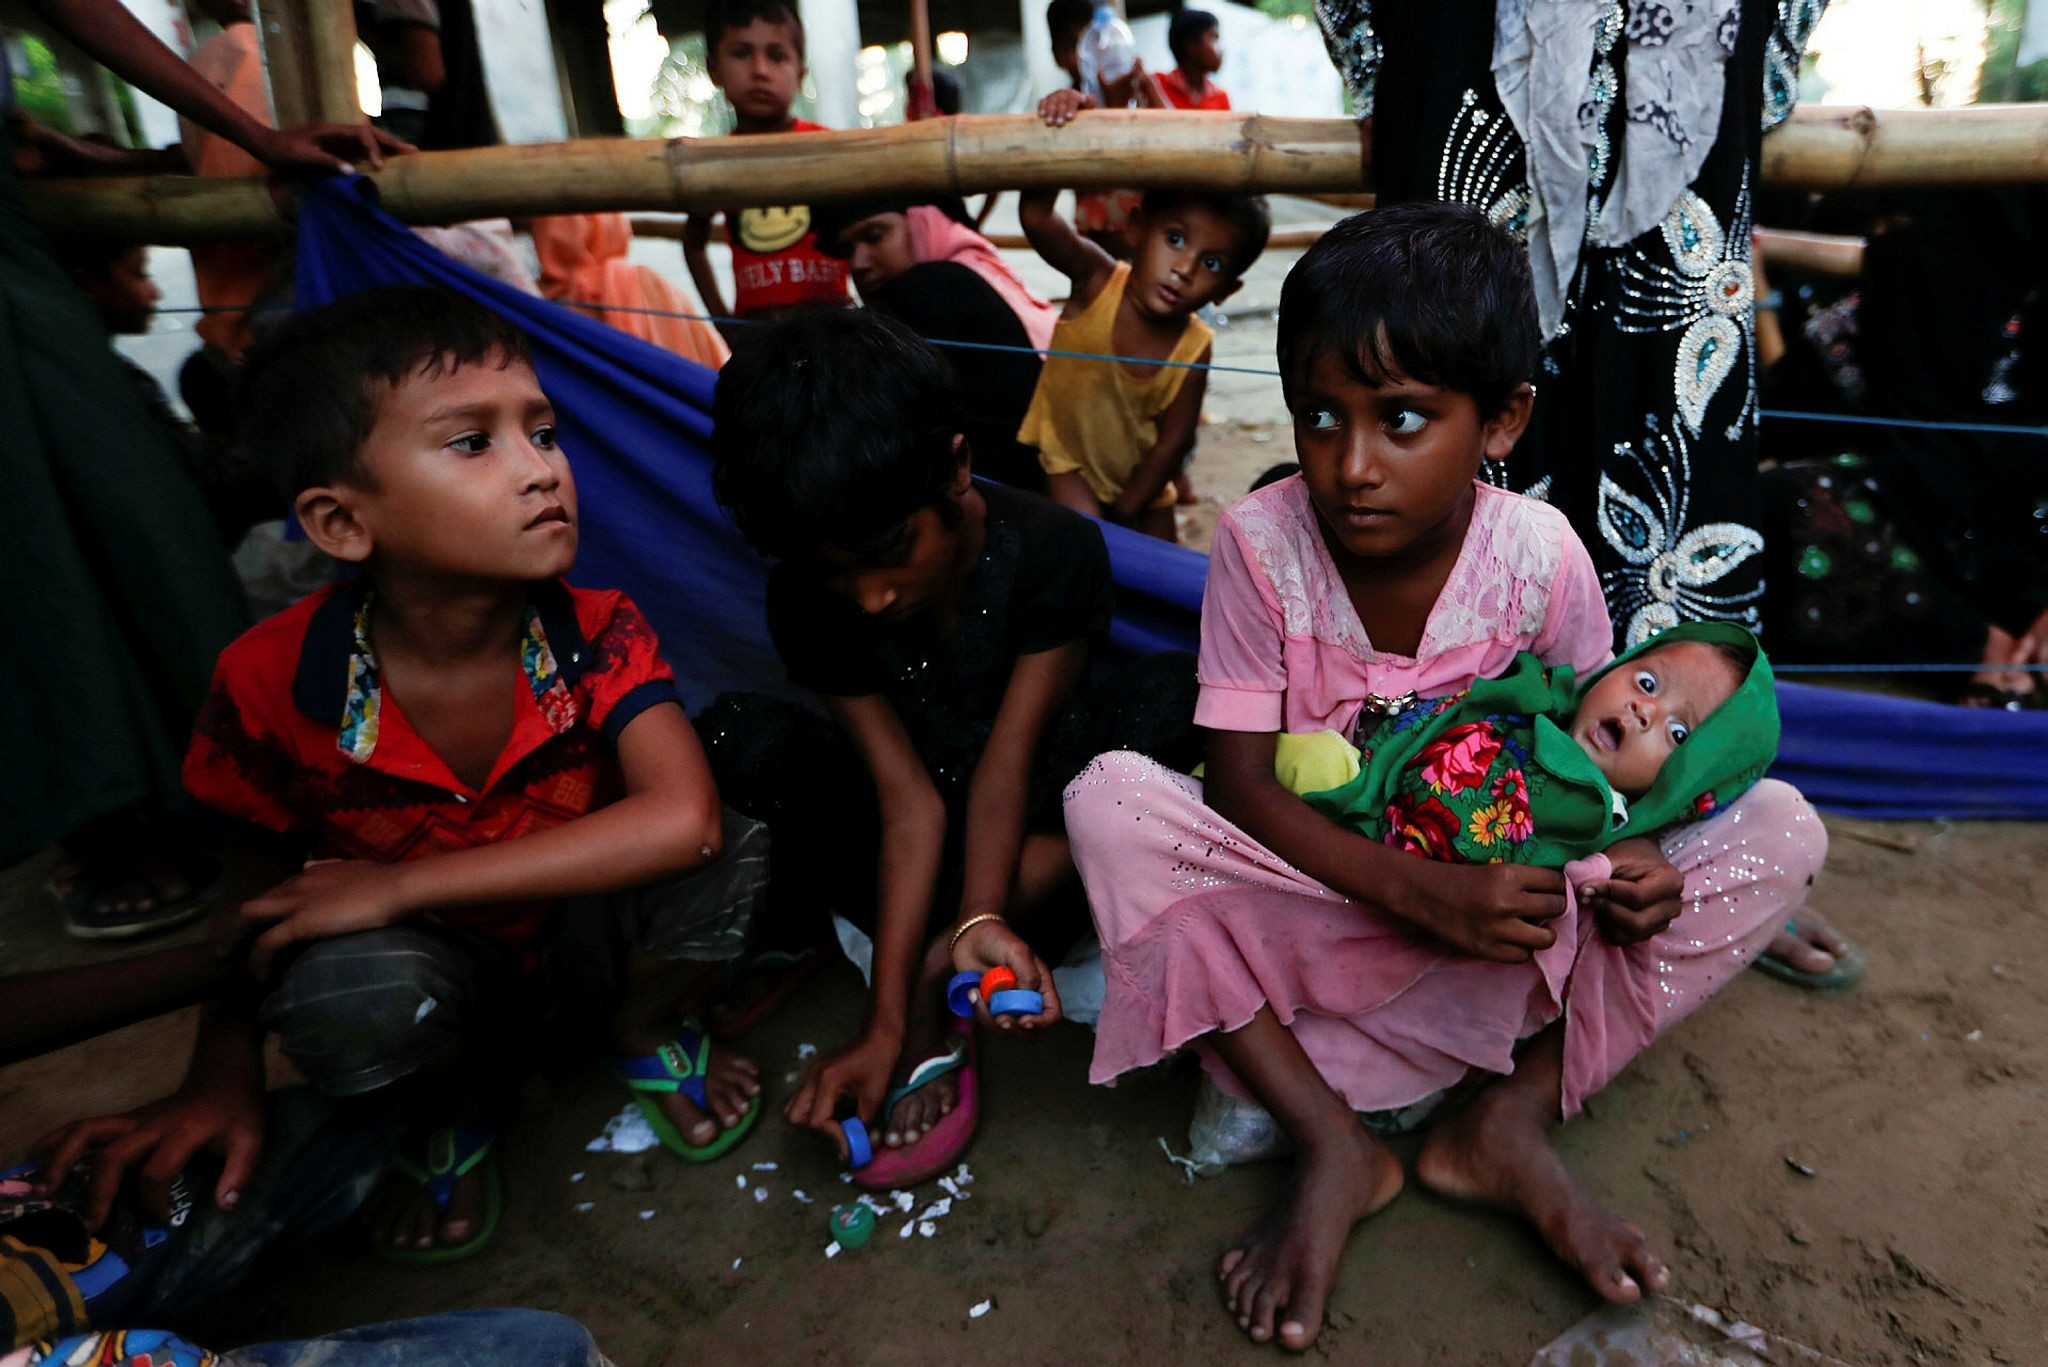 Rohingya refugee children sit as they wait for permission from the Bangladeshi military to continue at a registration center in Teknaf, Oct. 15.